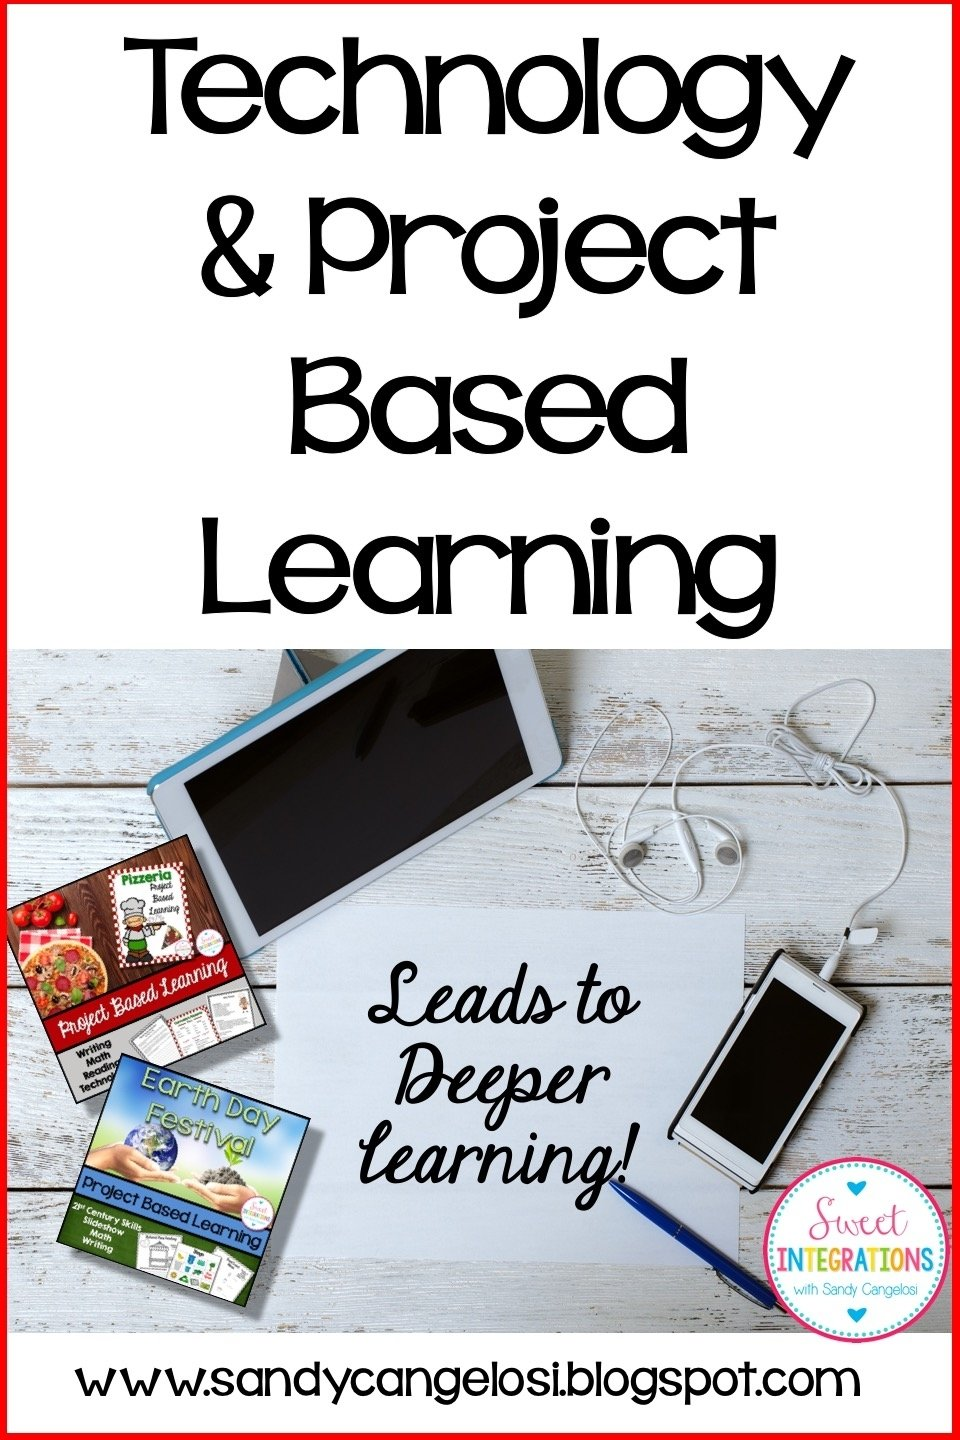 10 Trendy Project Based Learning Ideas For Middle School blending technology and project based learning sweet integrations 2021